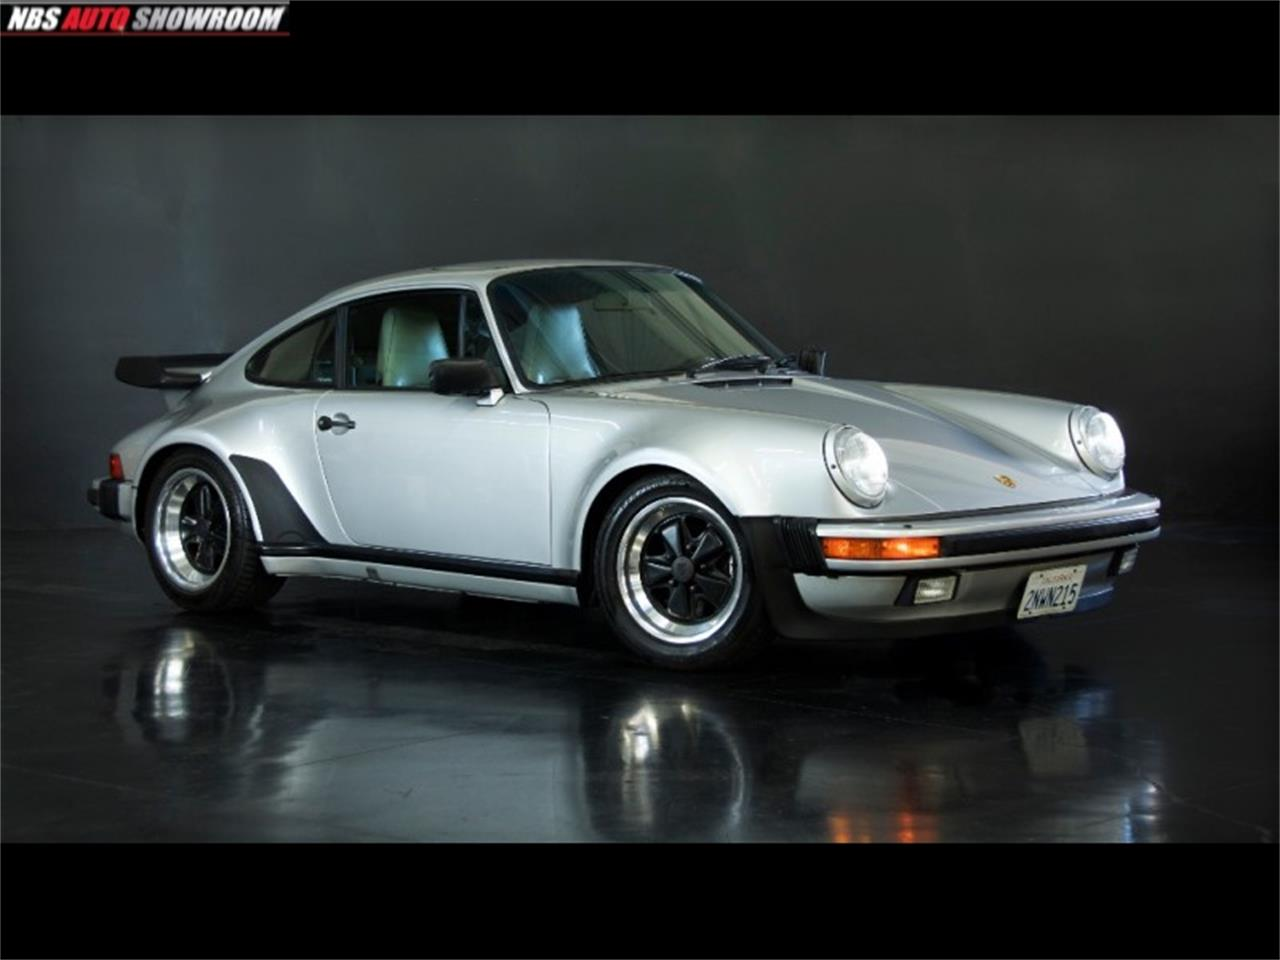 Large Picture of '89 911 located in California - $160,000.00 Offered by NBS Auto Showroom - Q9VO